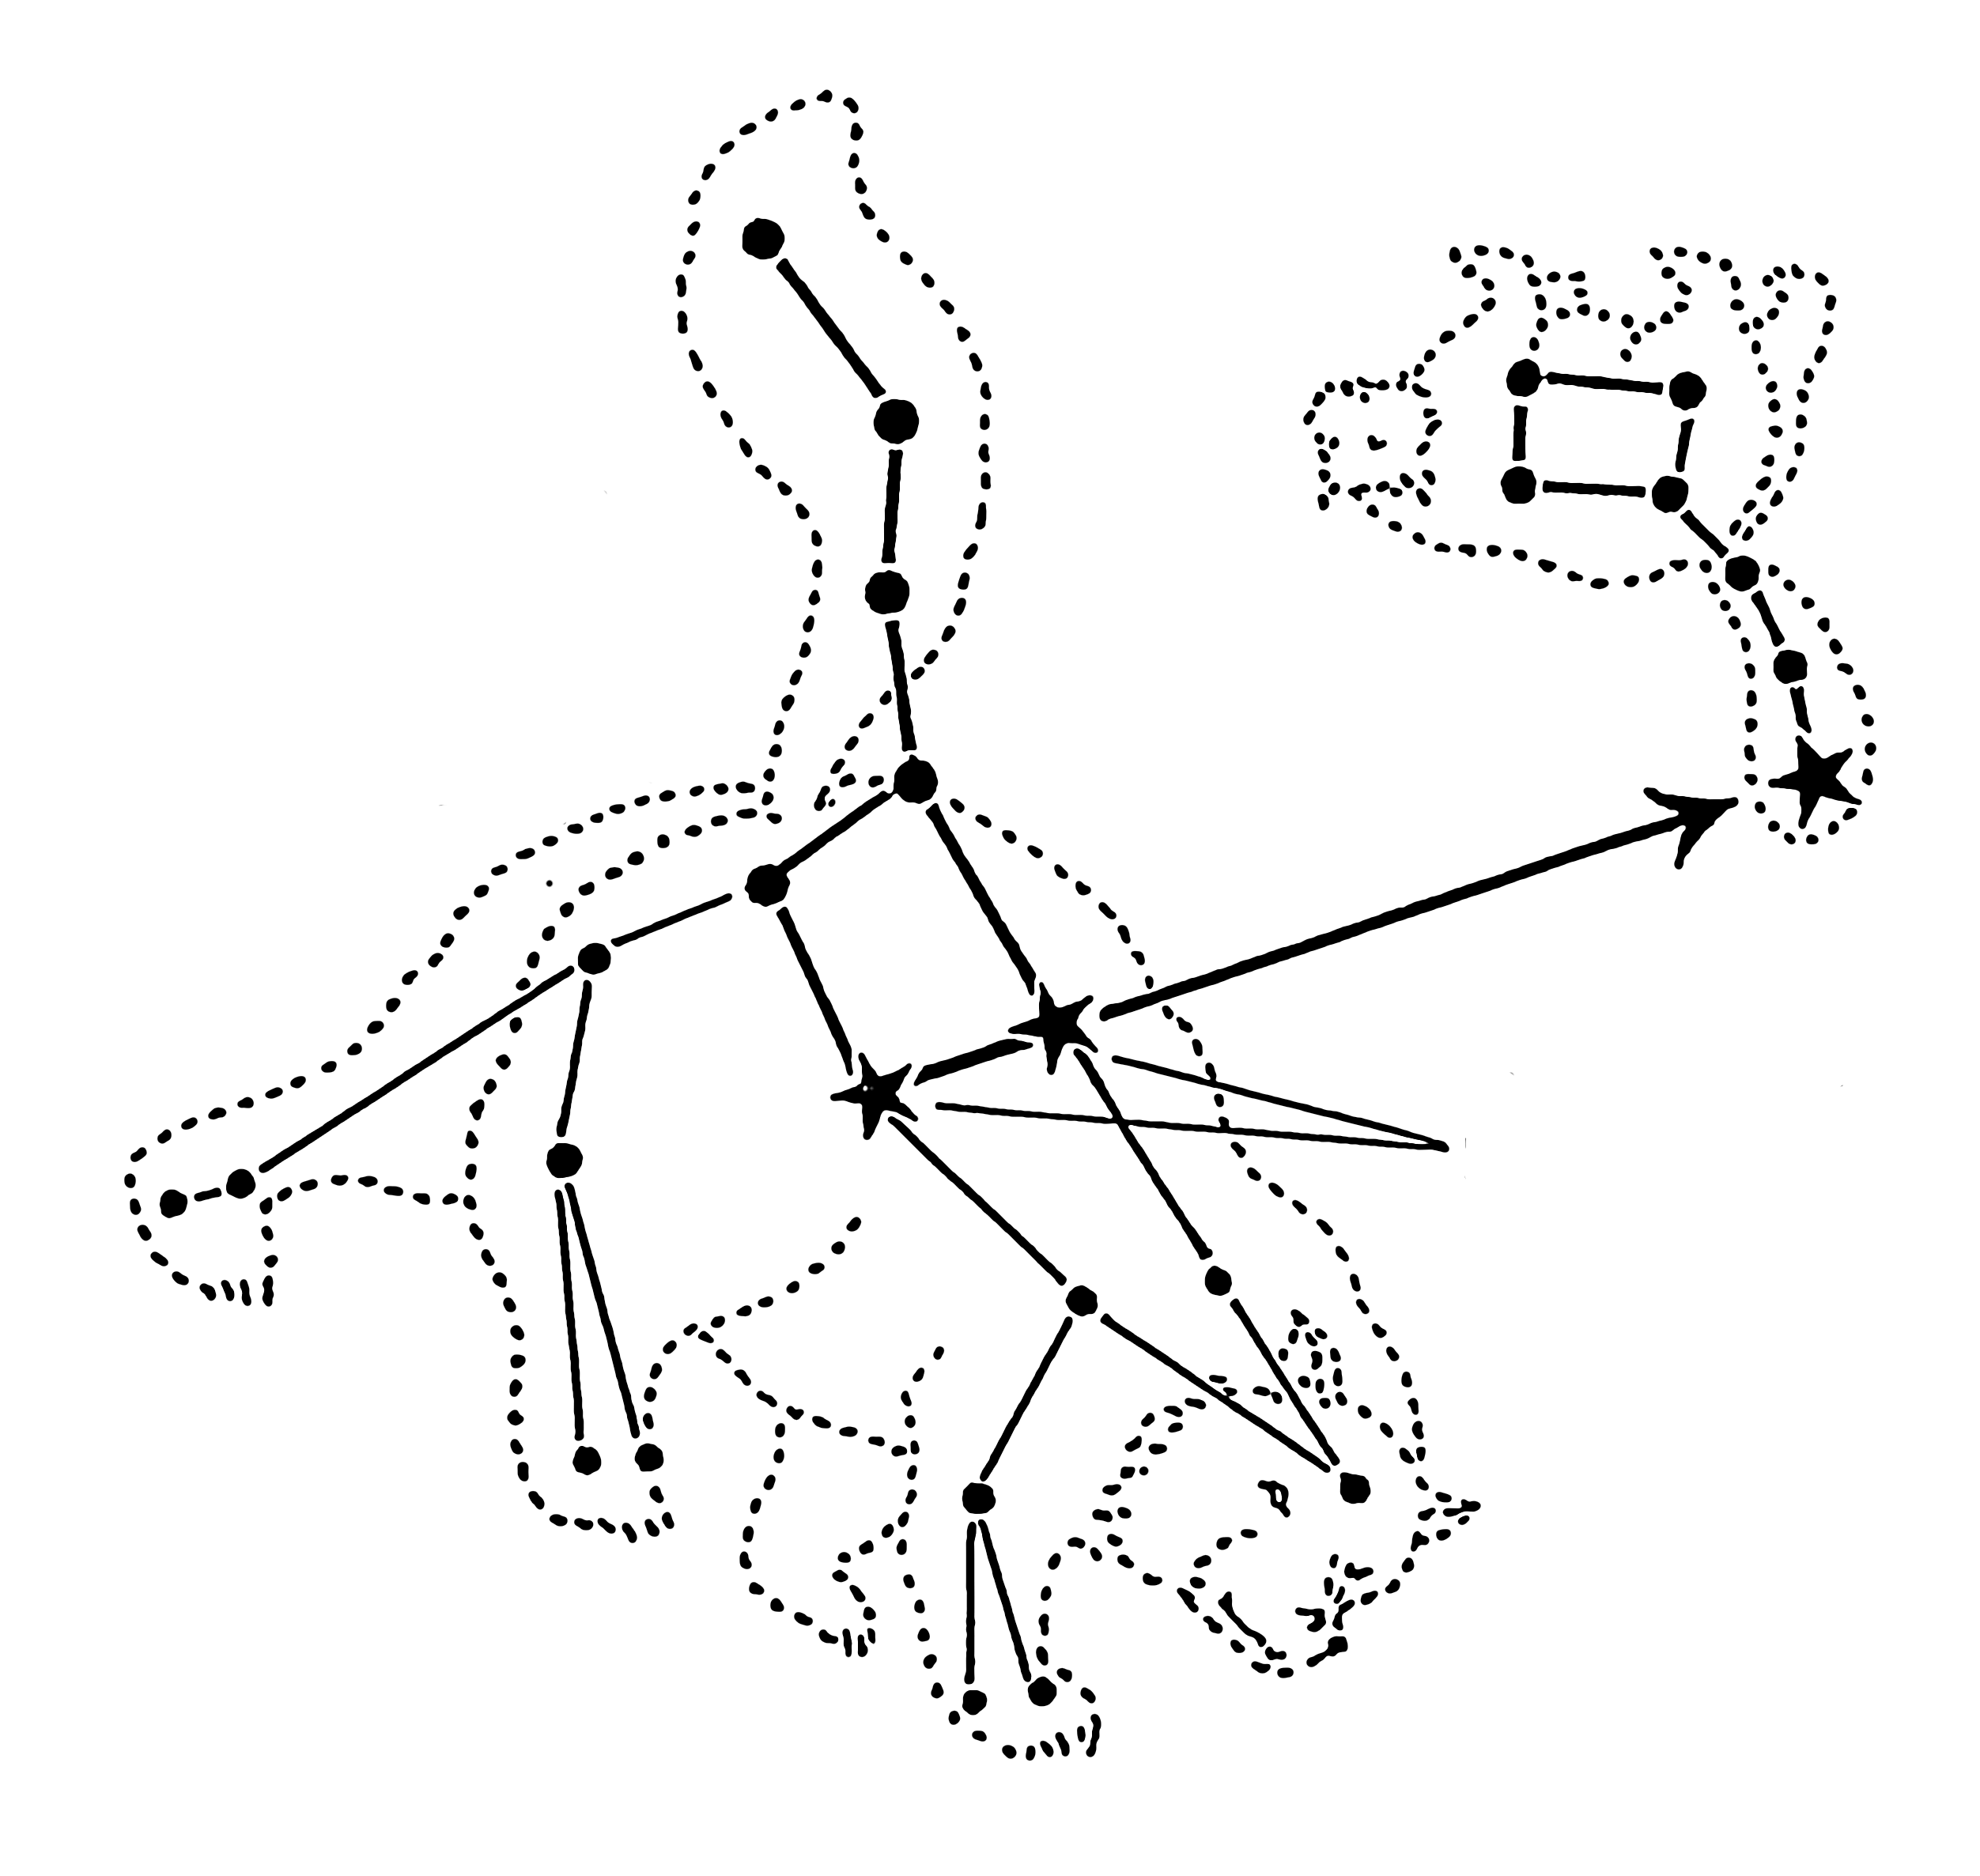 Line Art Wikipedia : File dipper constellations psf wikipedia